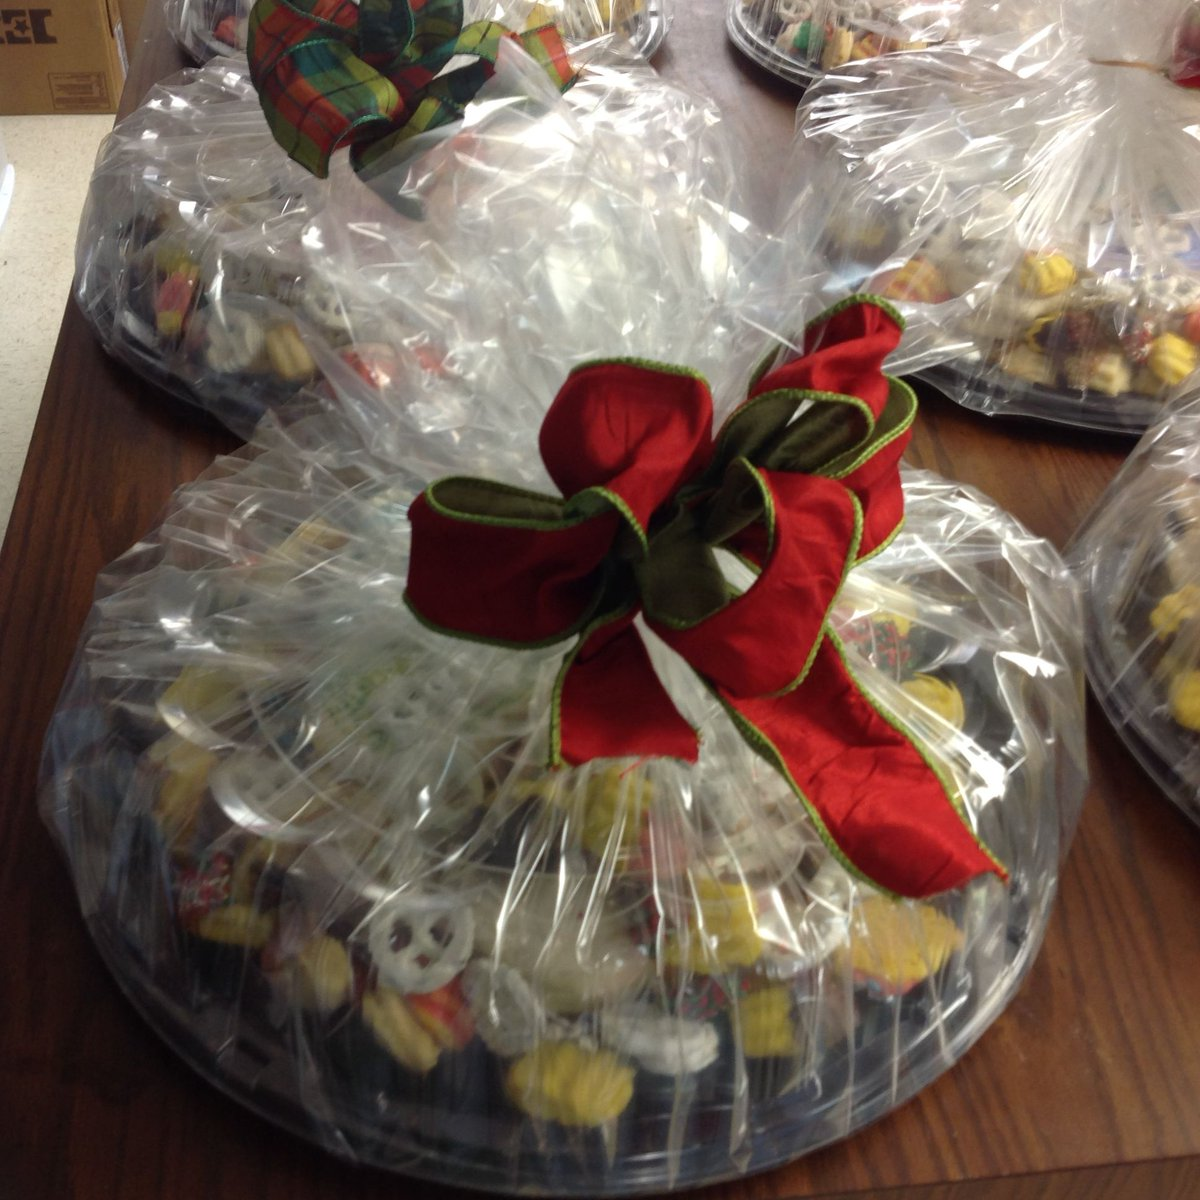 look no further we offer beautiful christmas cookie baskets there is no better way to say merry christmas and happy holidays than with cookies - Christmas Cookie Baskets